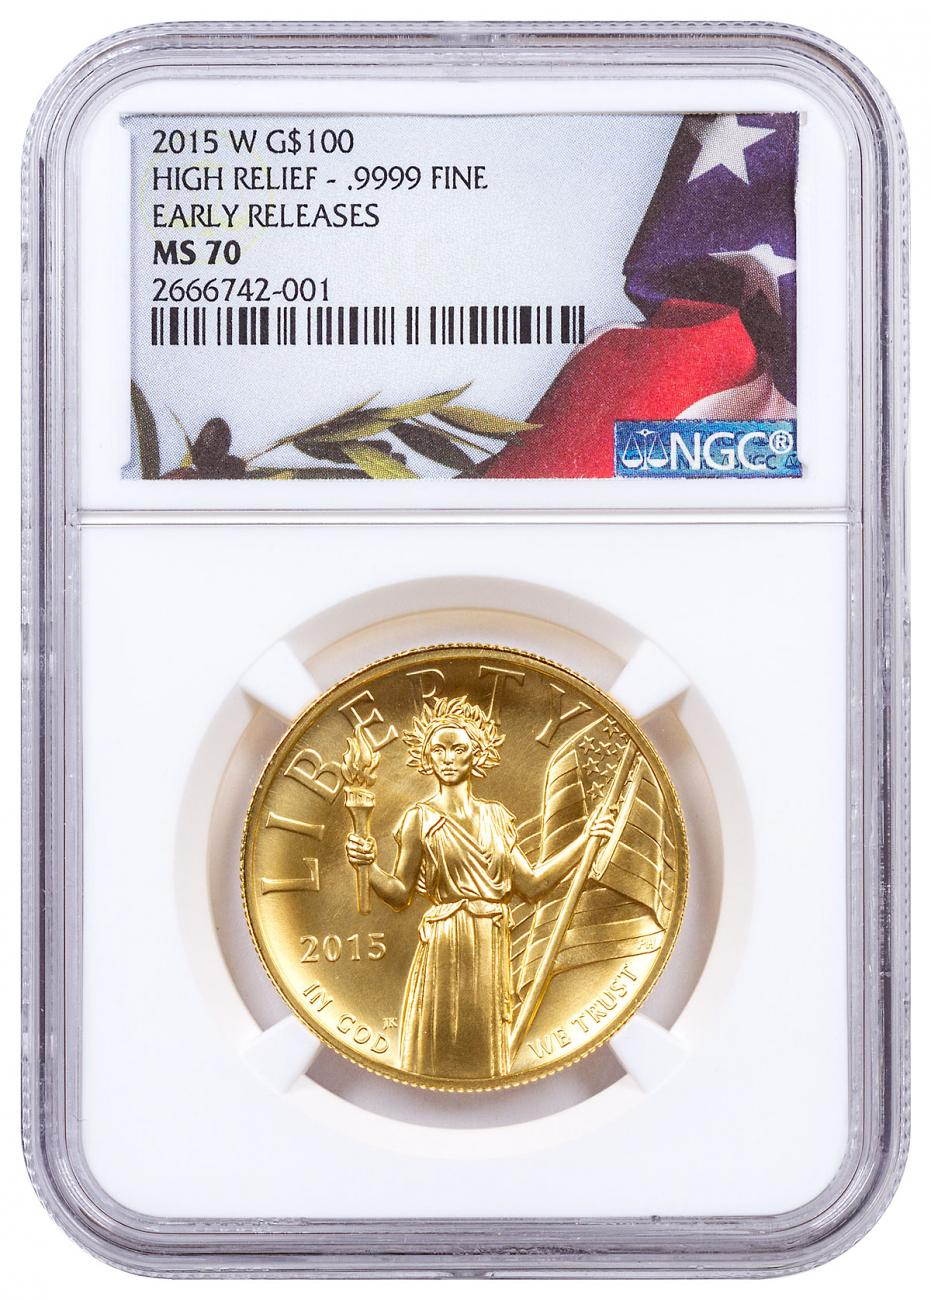 2015-W American Liberty Gold High Relief $100 NGC MS70 ER Draped Flag Label